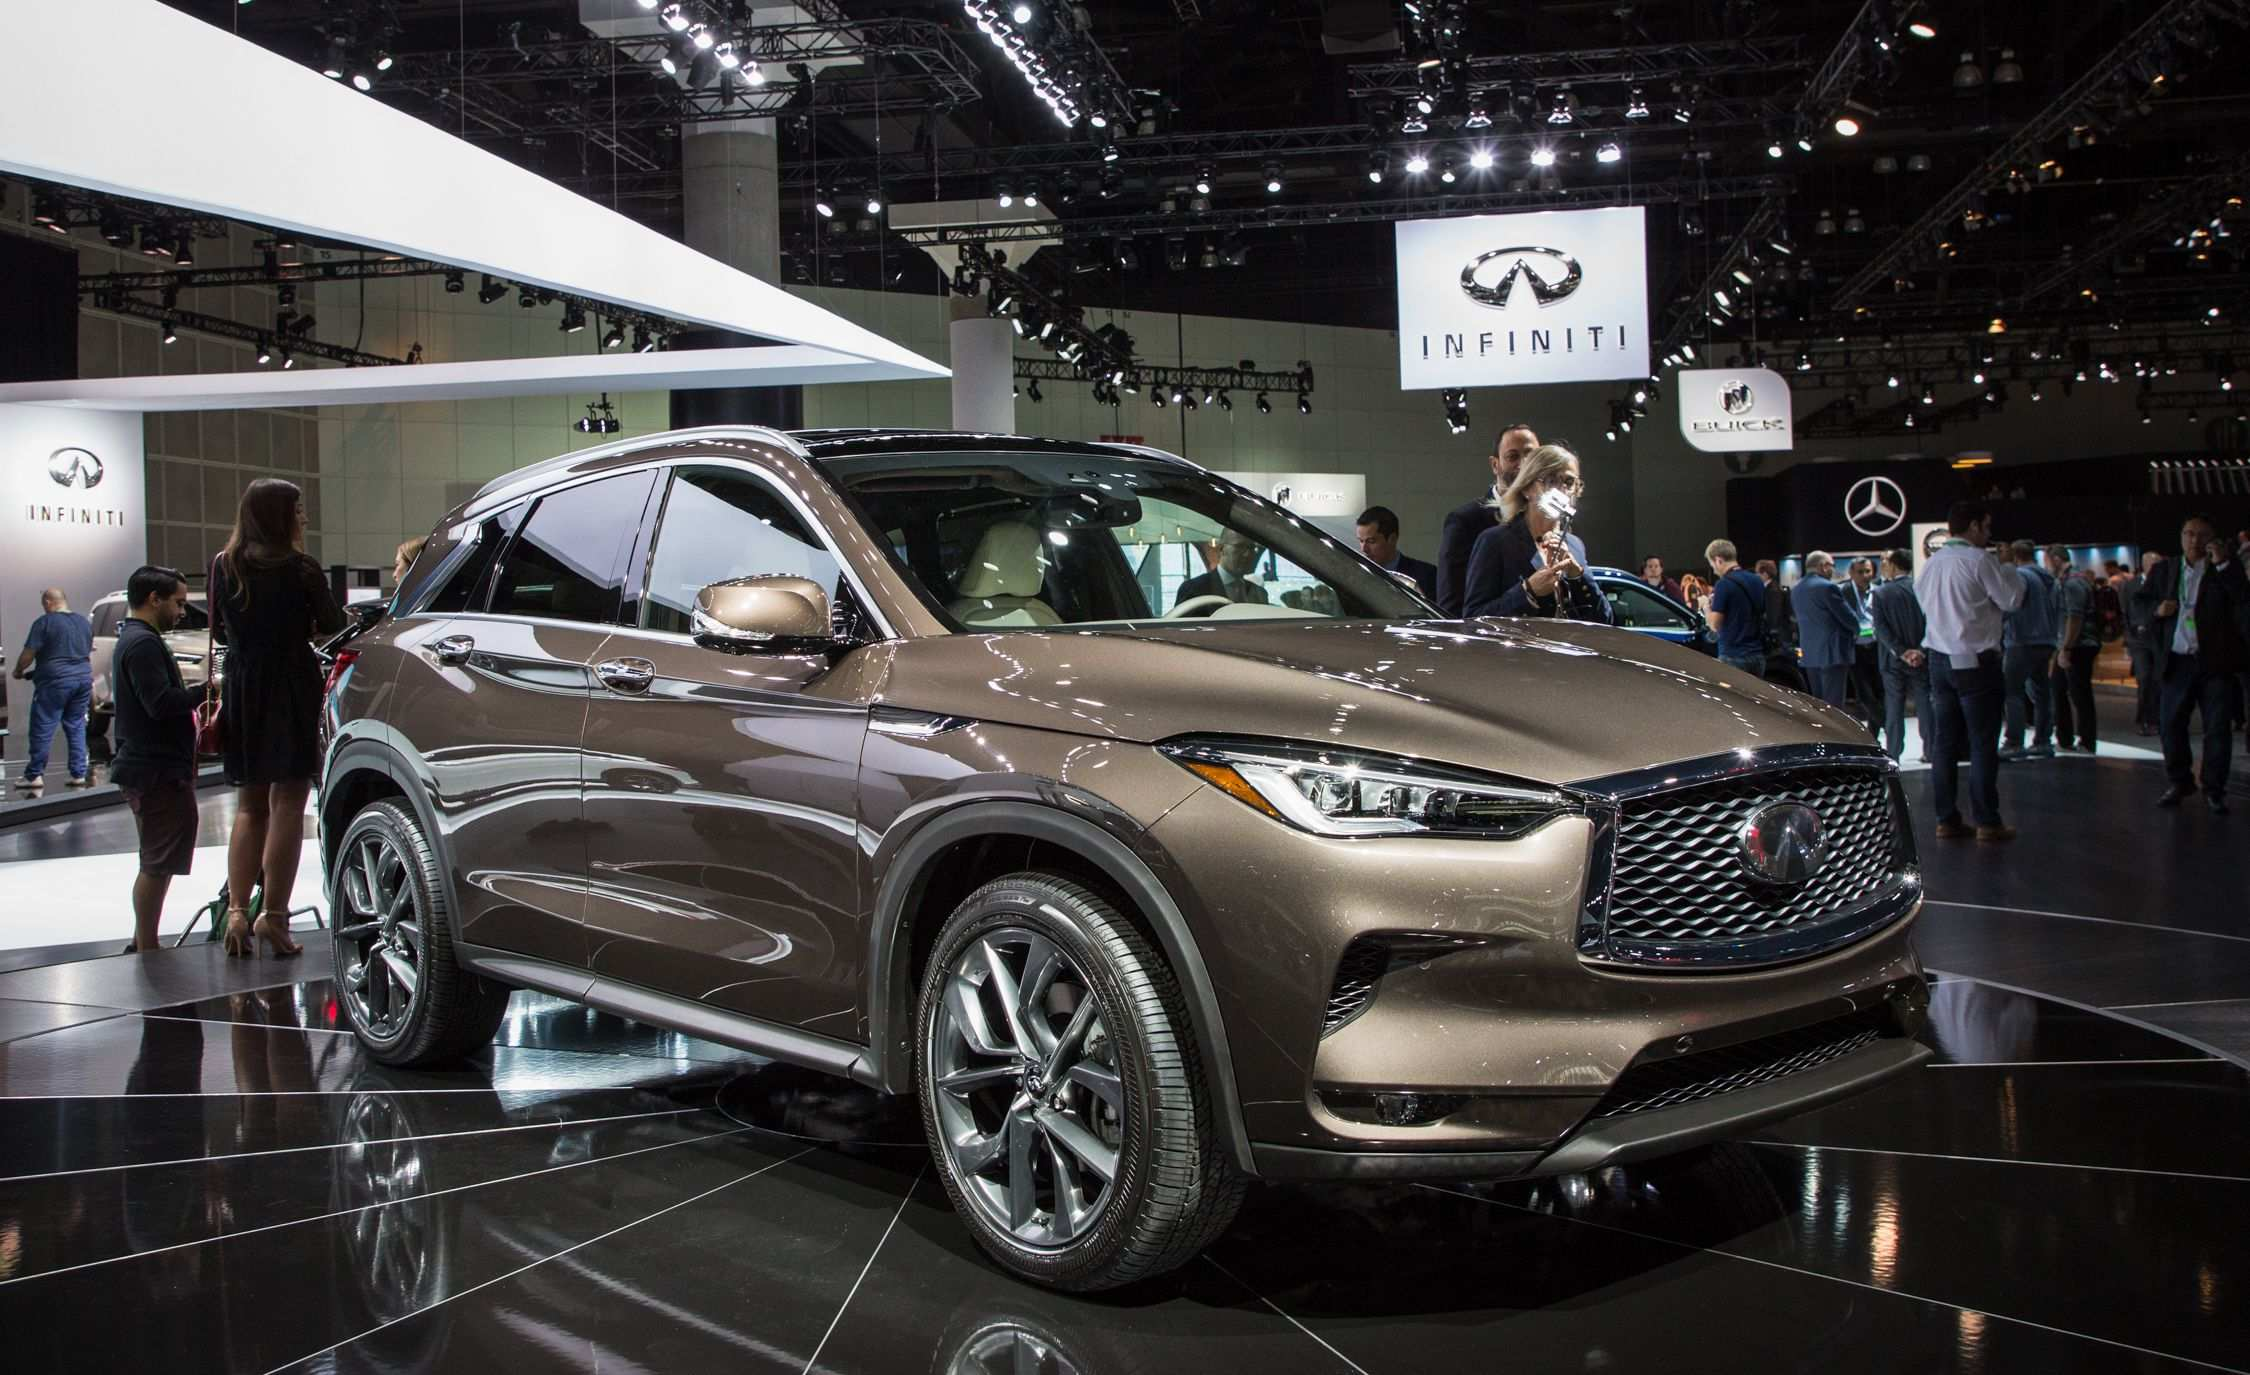 27 Concept of New 2019 Infiniti Qx50 New Review Engine by New 2019 Infiniti Qx50 New Review